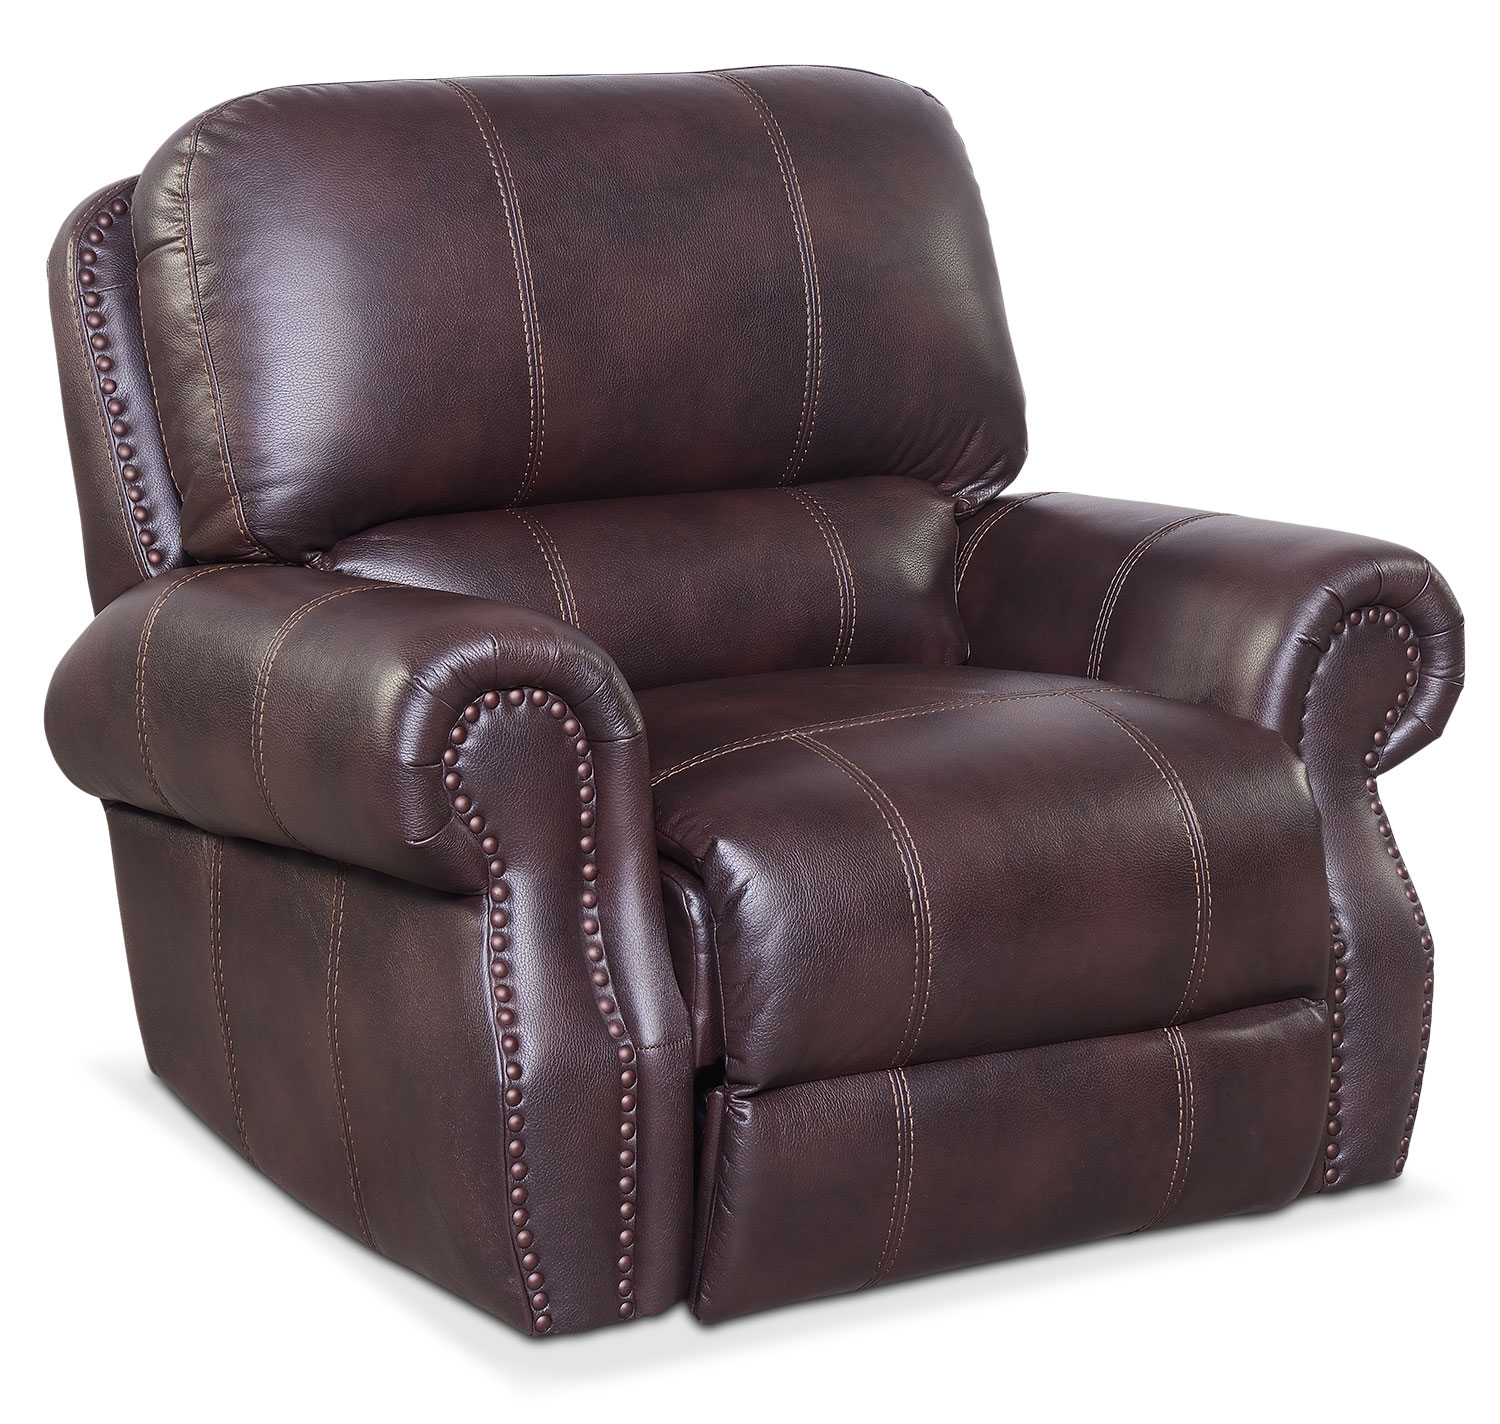 Living Room Furniture - Dartmouth Power Recliner - Burgundy